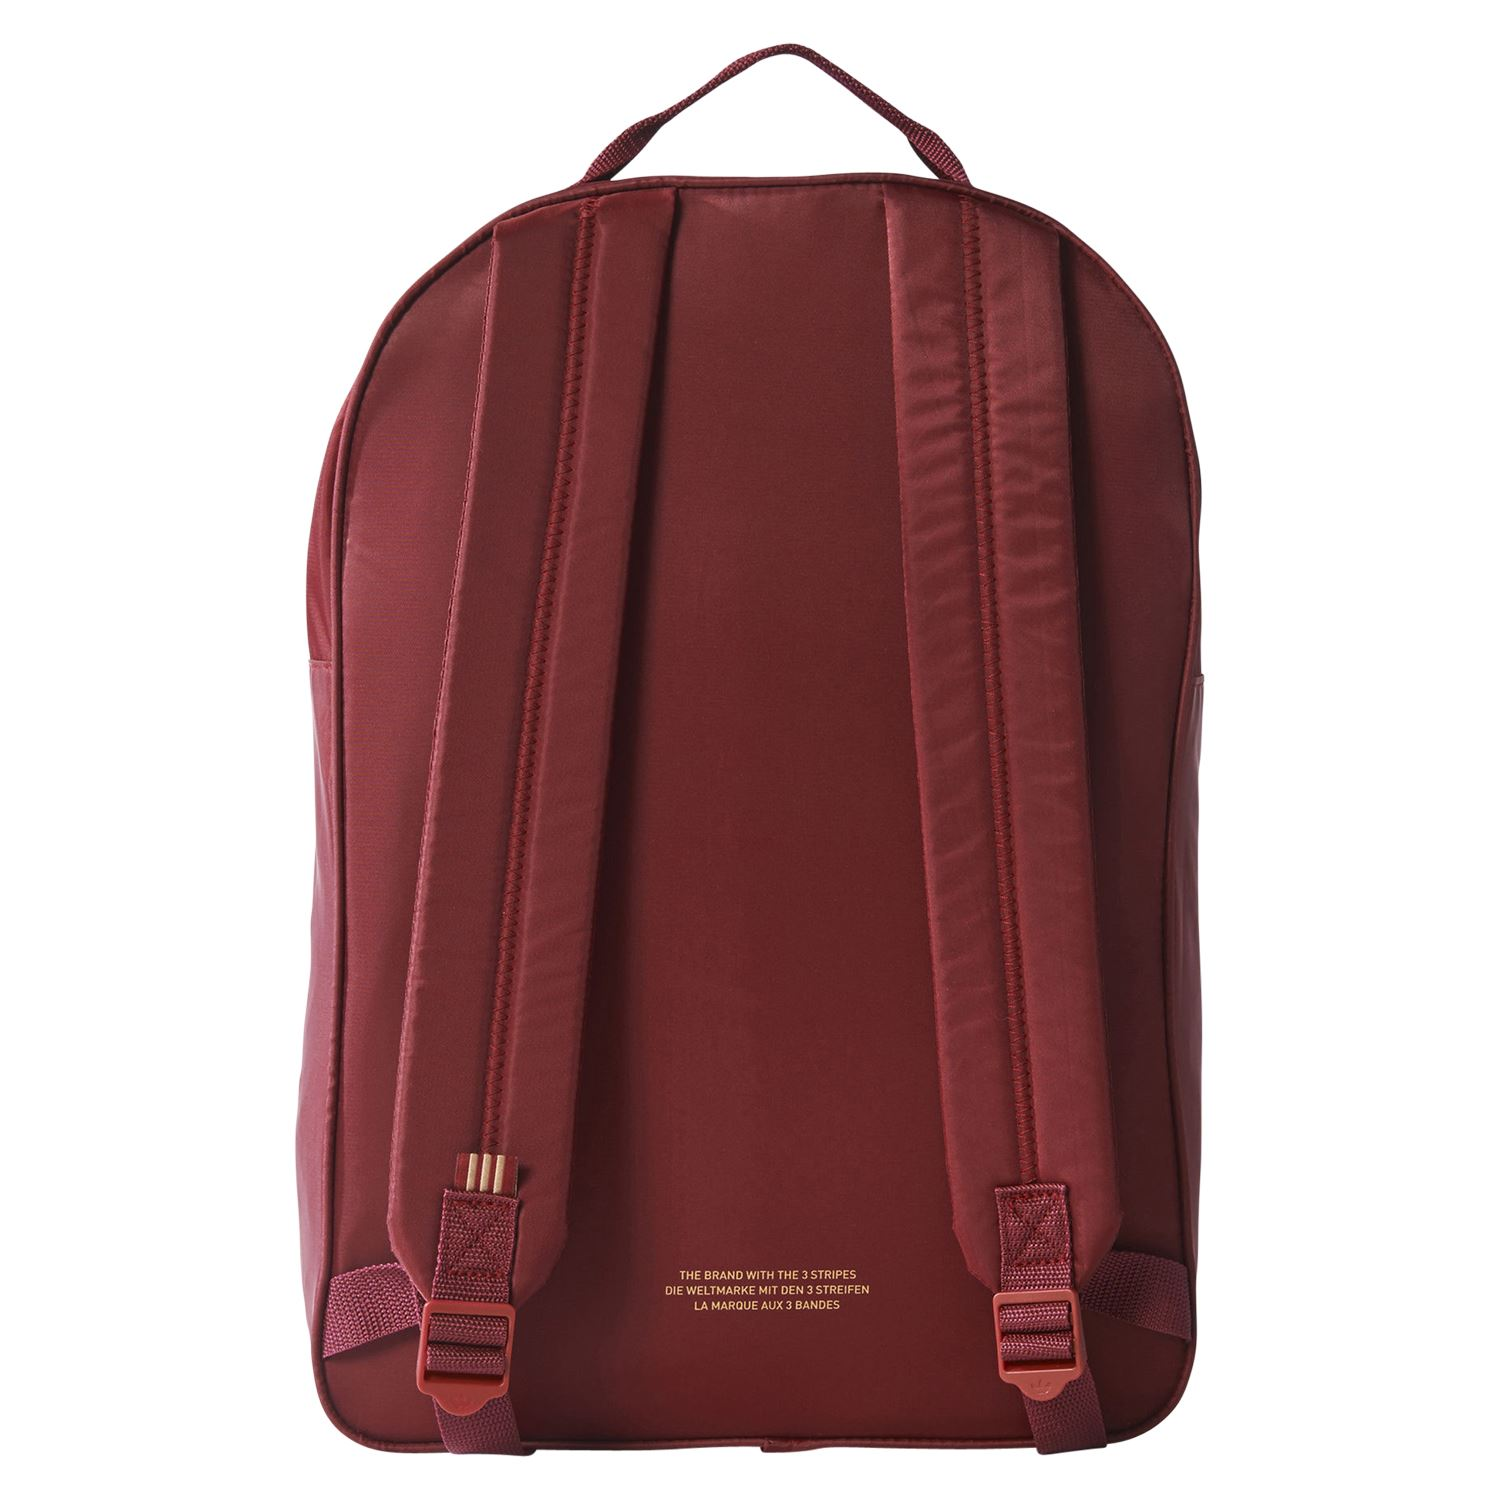 77f89875e Details about adidas ORIGINALS CLASSIC TREFOIL BACKPACK BURGUNDY RED BACK  TO SCHOOL COLLEGE